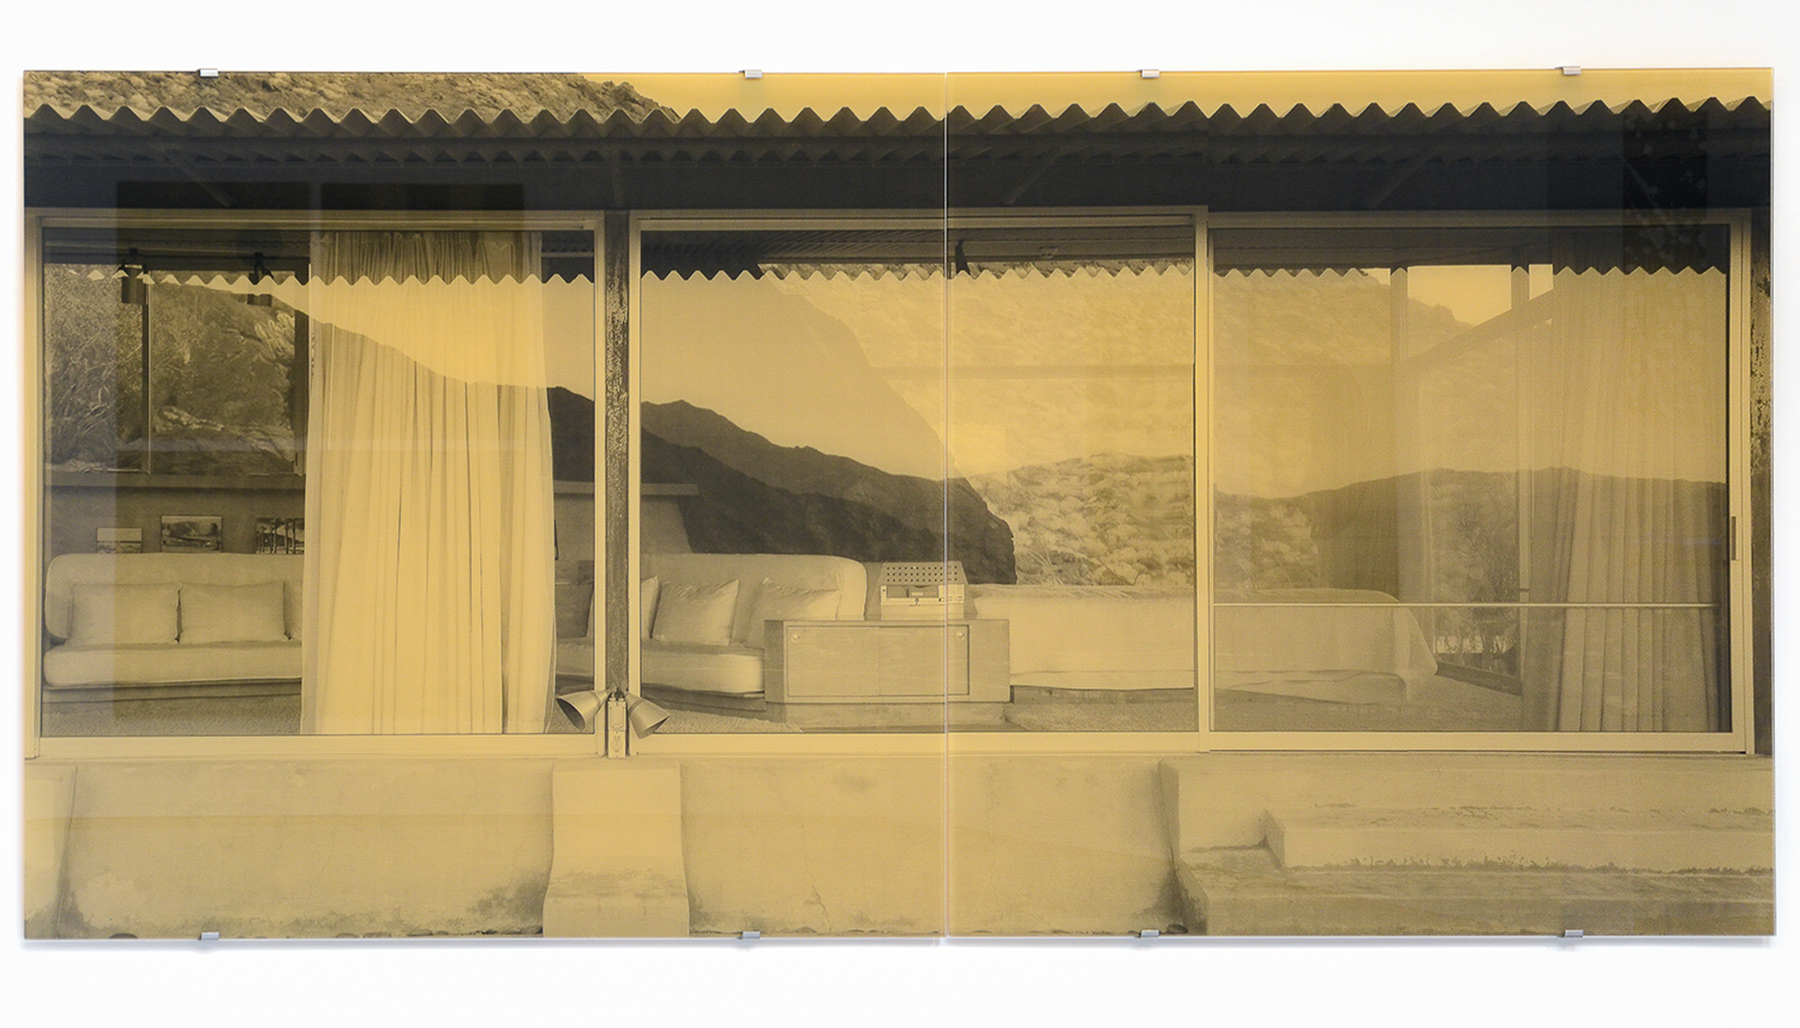 Mountain Crest Echo , 2017 2-panel silkscreen print on glass overall dimensions: 59 x 122-7/8 inches, 150 x 312 cm Edition of 5